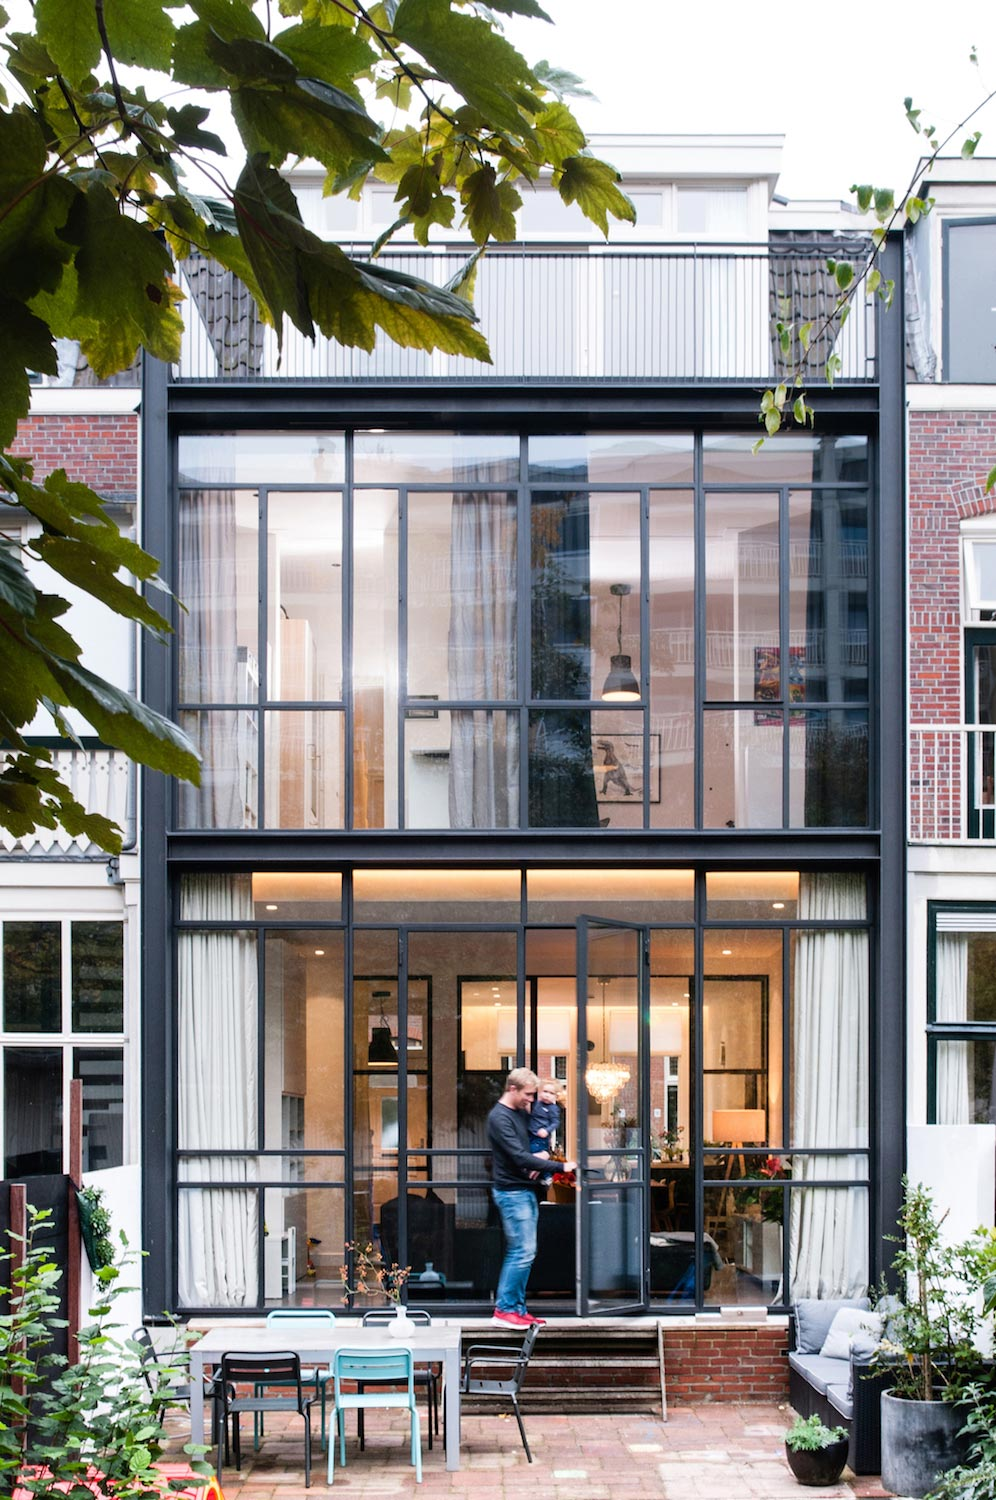 Dutch Design Studio Lab S Has Renovated A 30u0027s Row House In The City Of